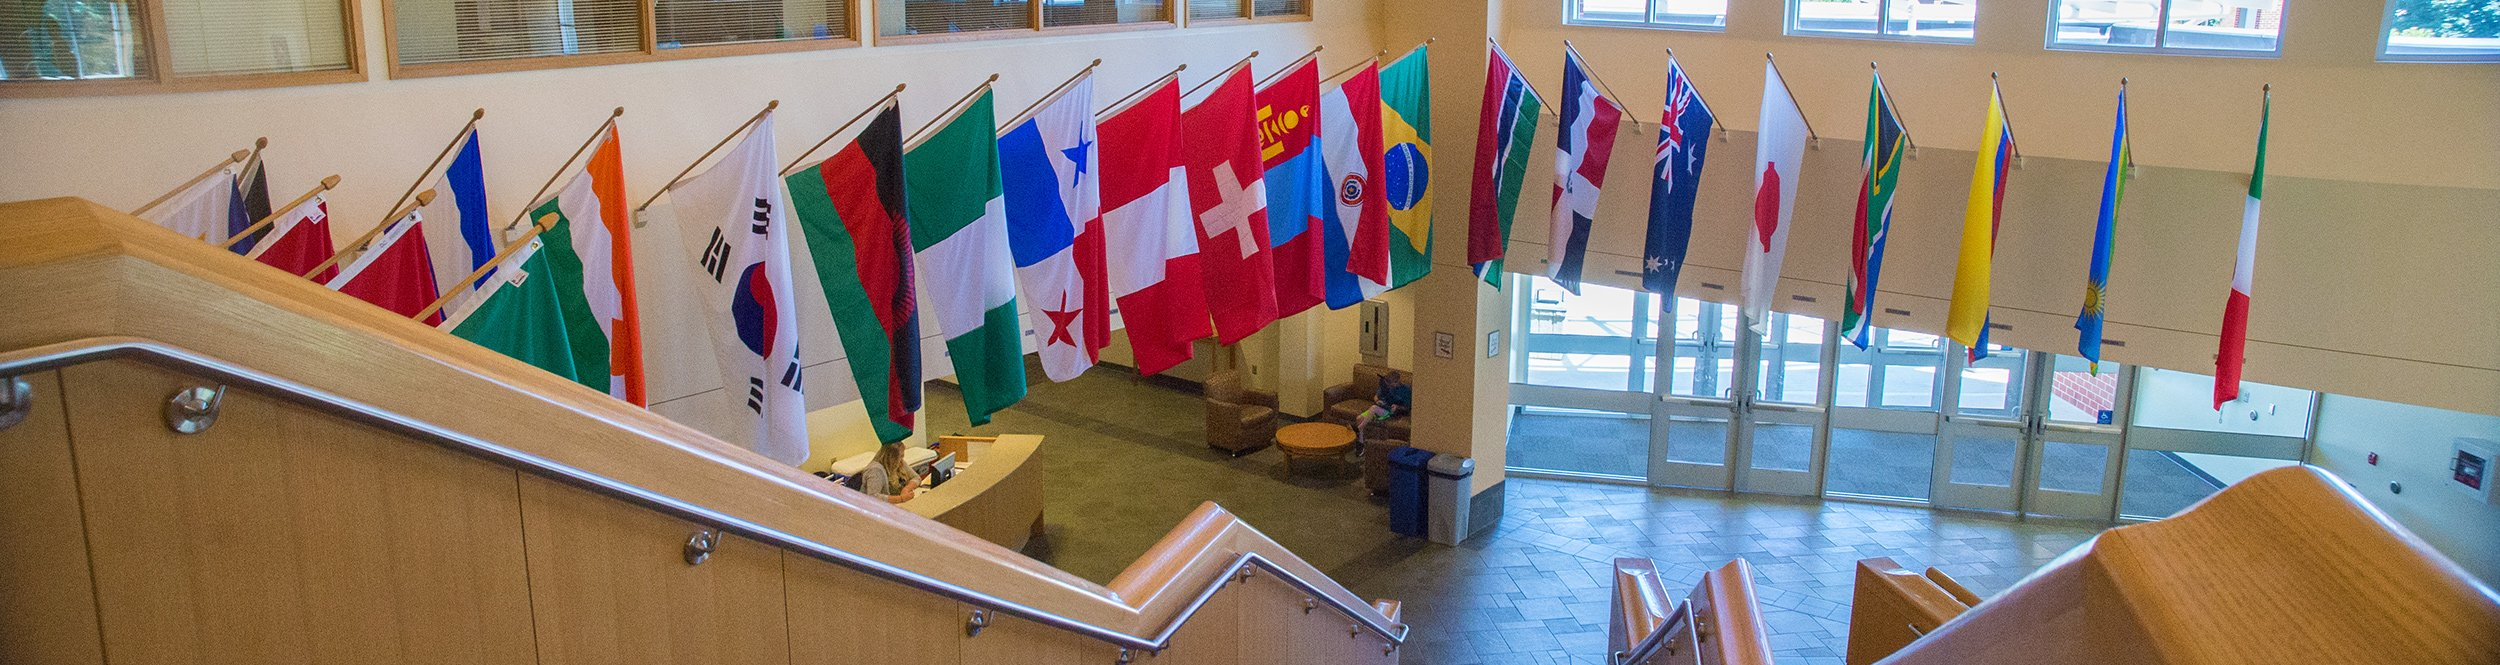 Flags of different countries hanging on the walls.